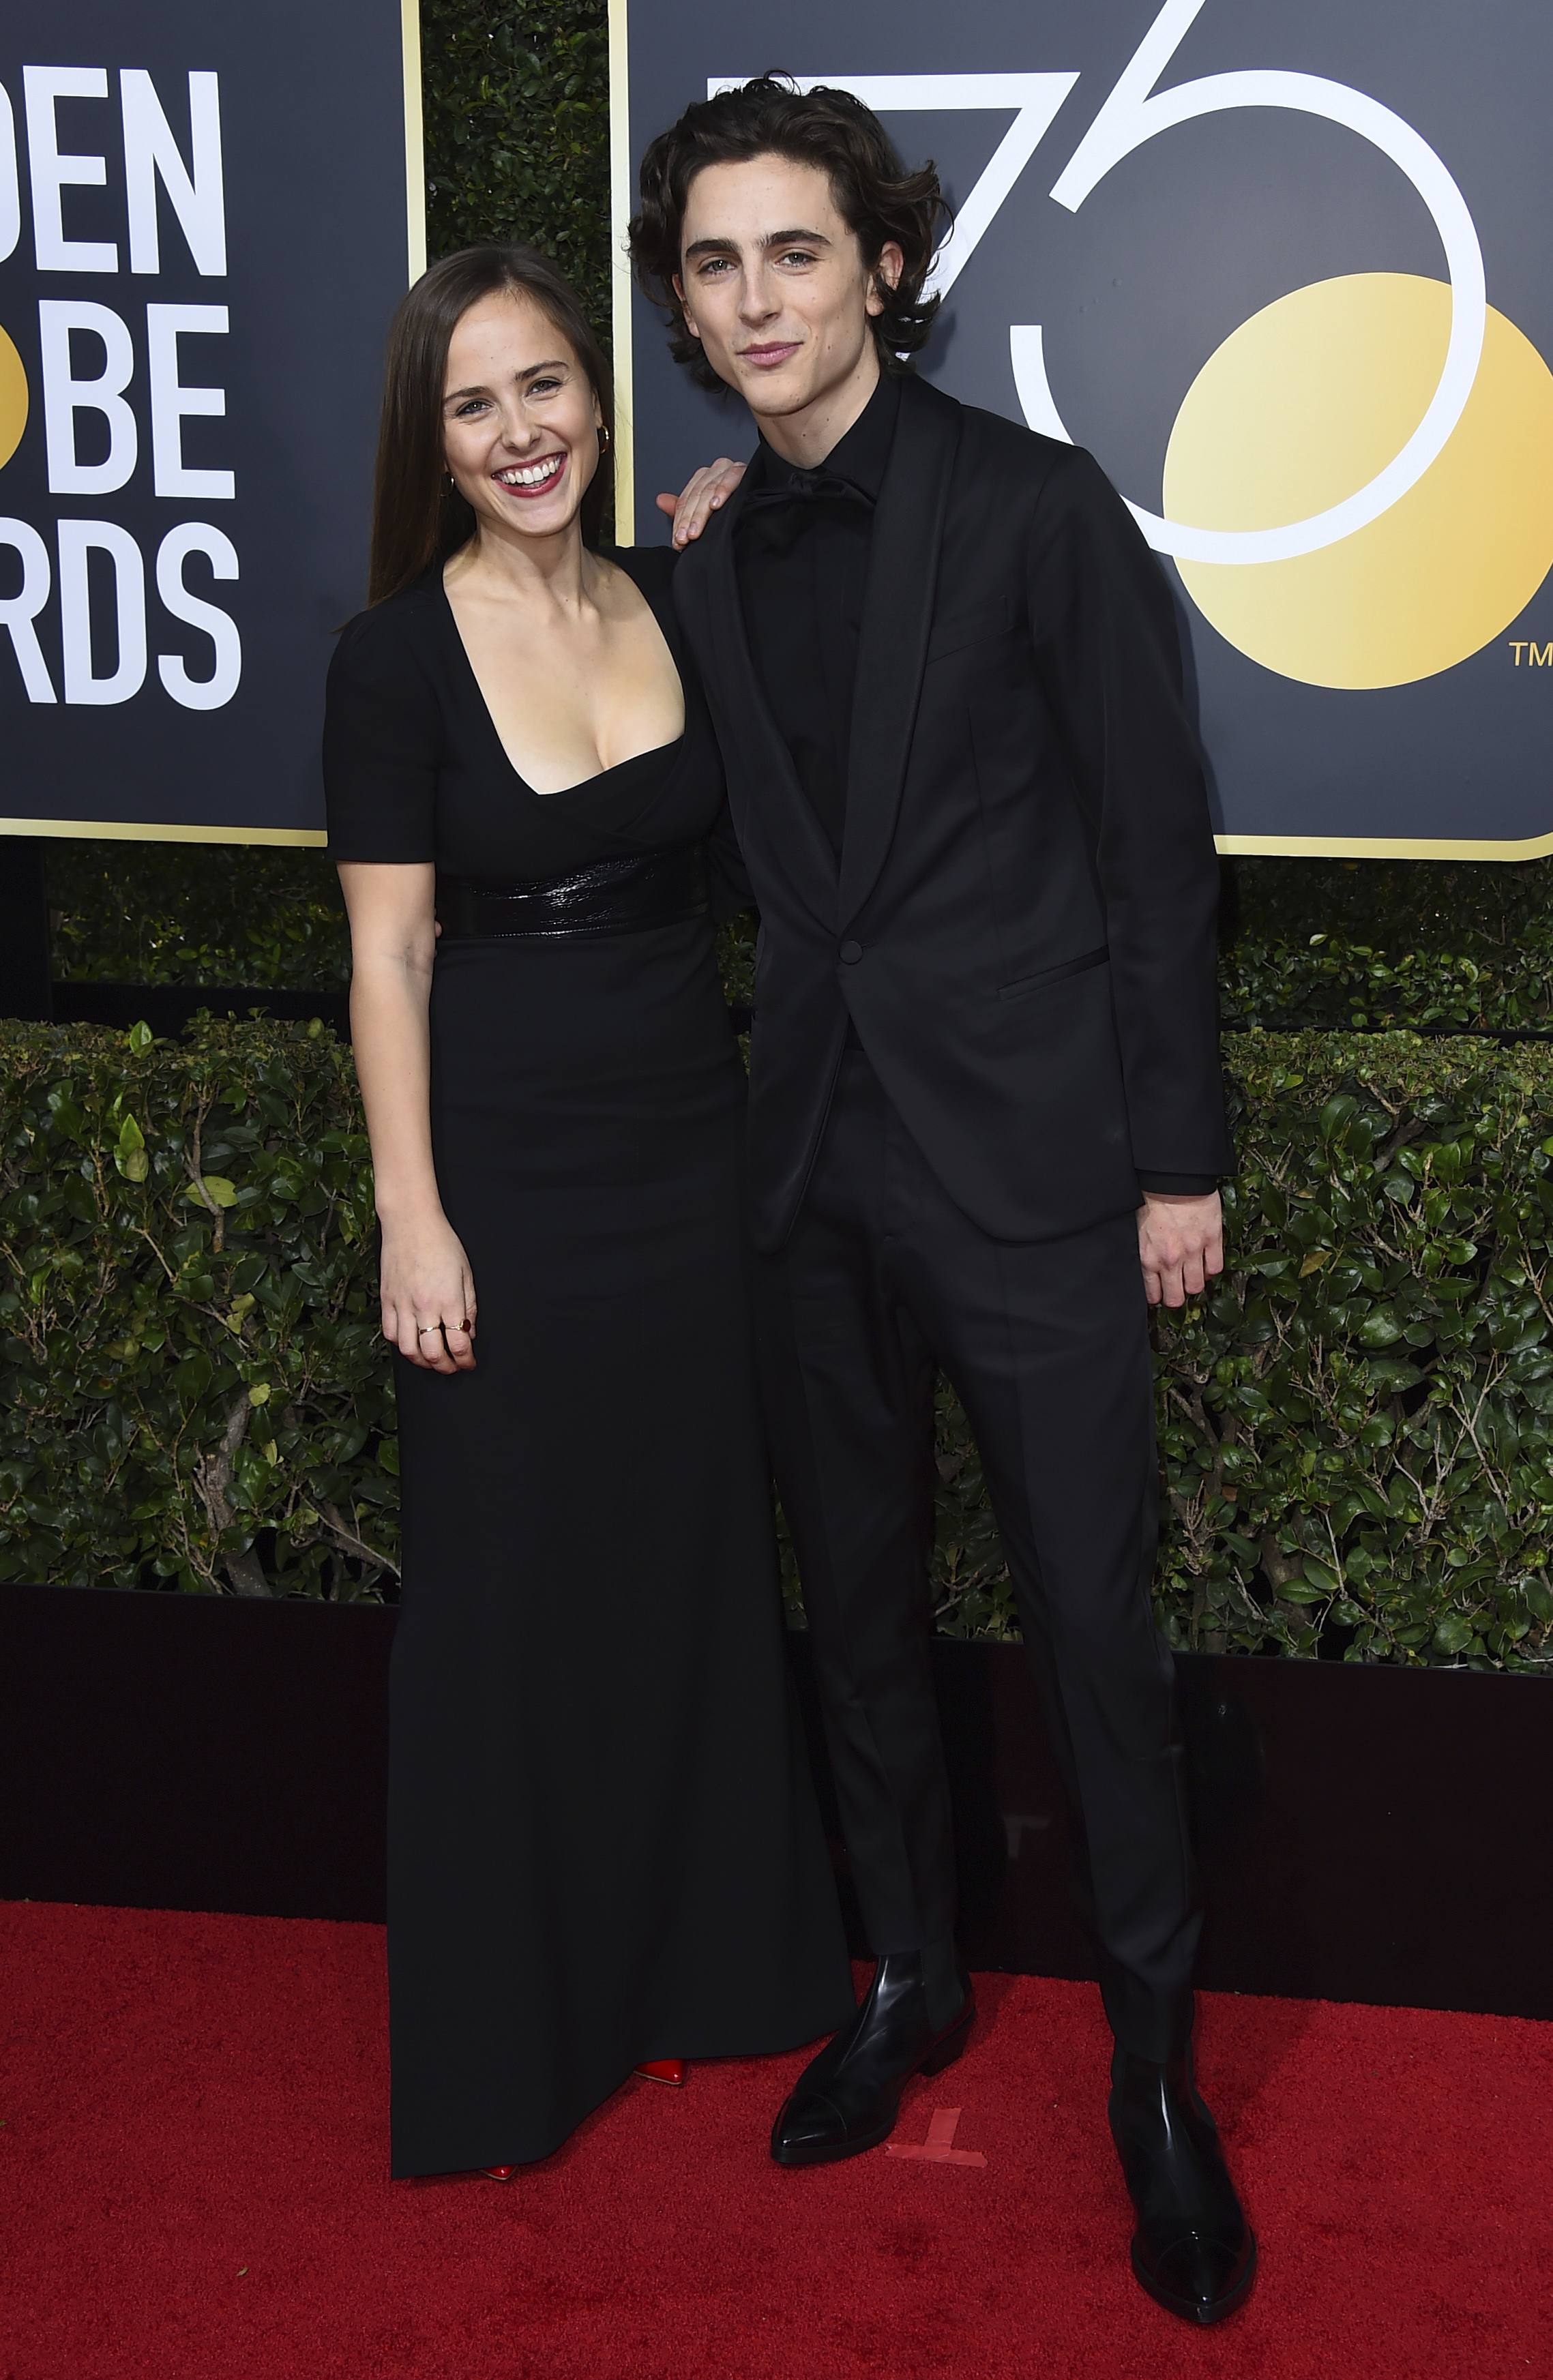 Pauline Chalamet, left, and Timothee Chalamet arrive at the 75th annual Golden Globe Awards at the Beverly Hilton Hotel on Sunday, Jan. 7, 2018, in Beverly Hills, Calif. (Photo by Jordan Strauss/Invision/AP)